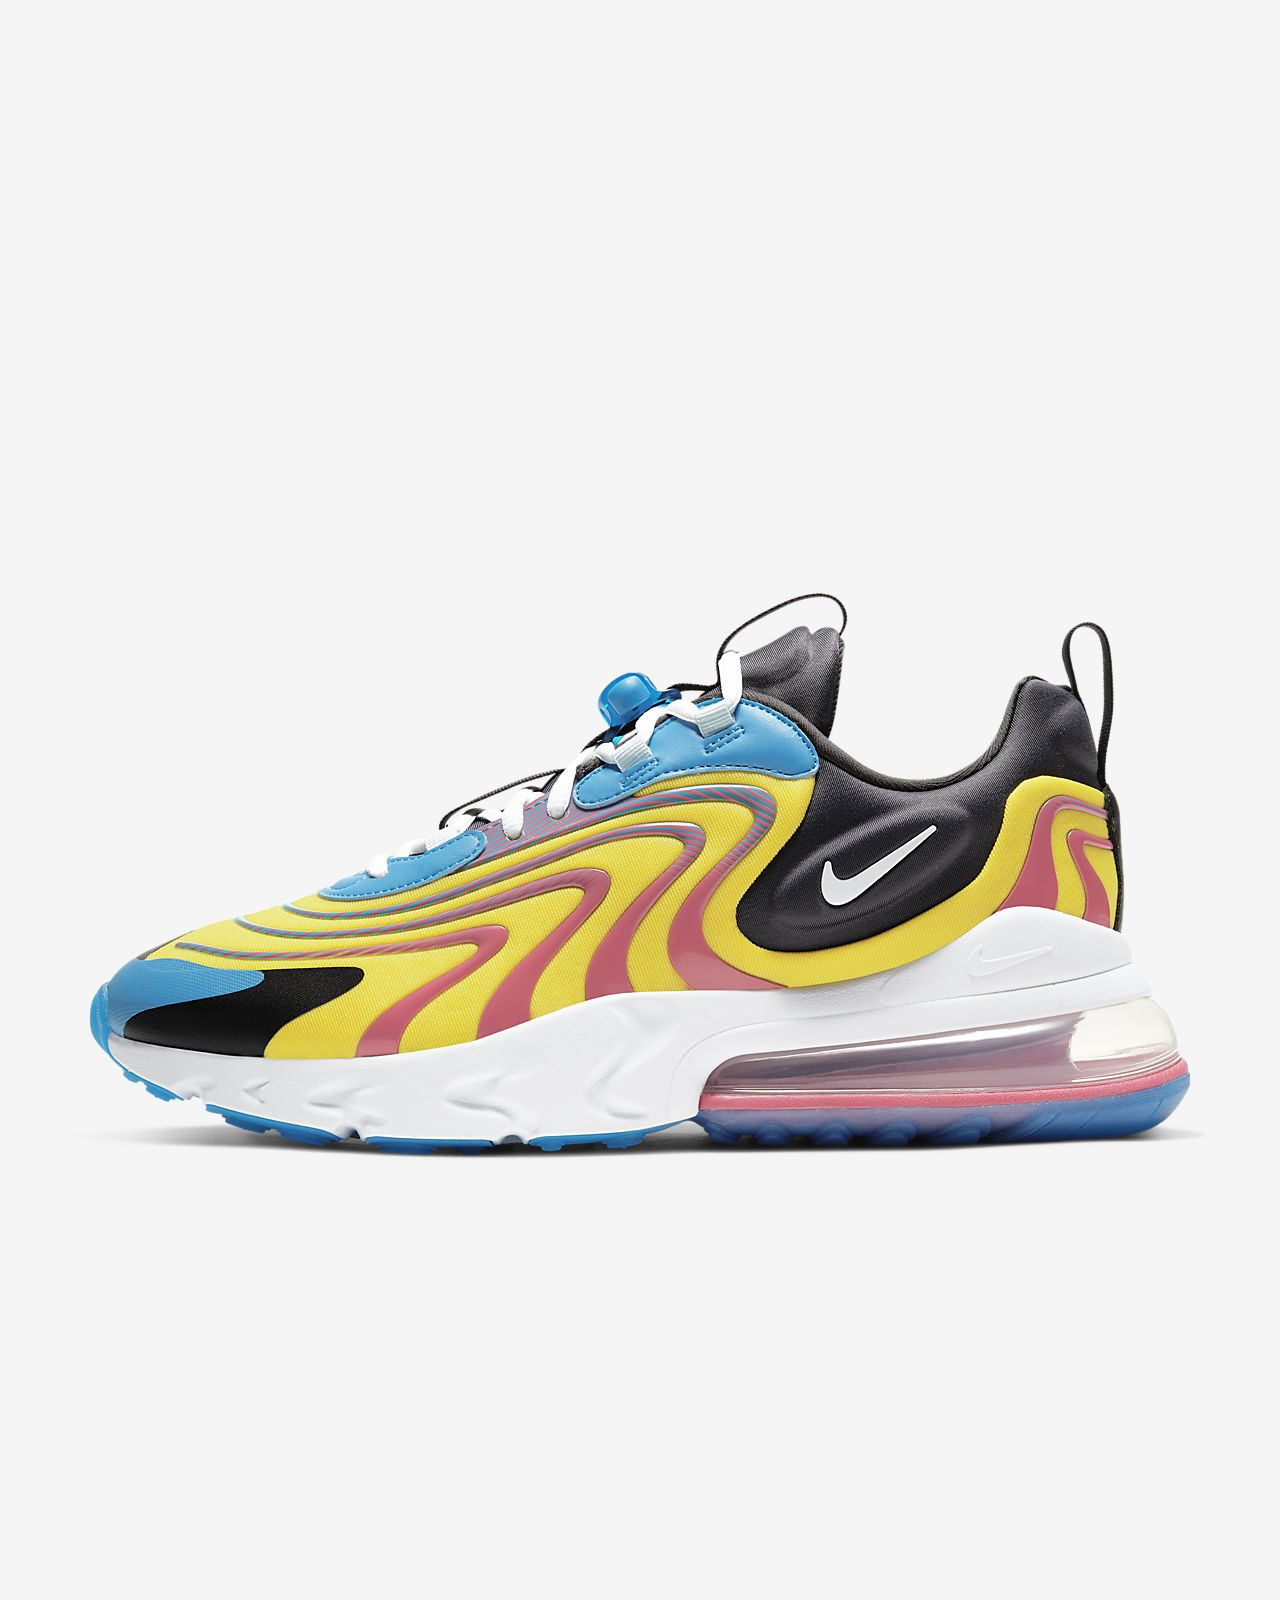 Nike Air Max 270 React ENG Herenschoen